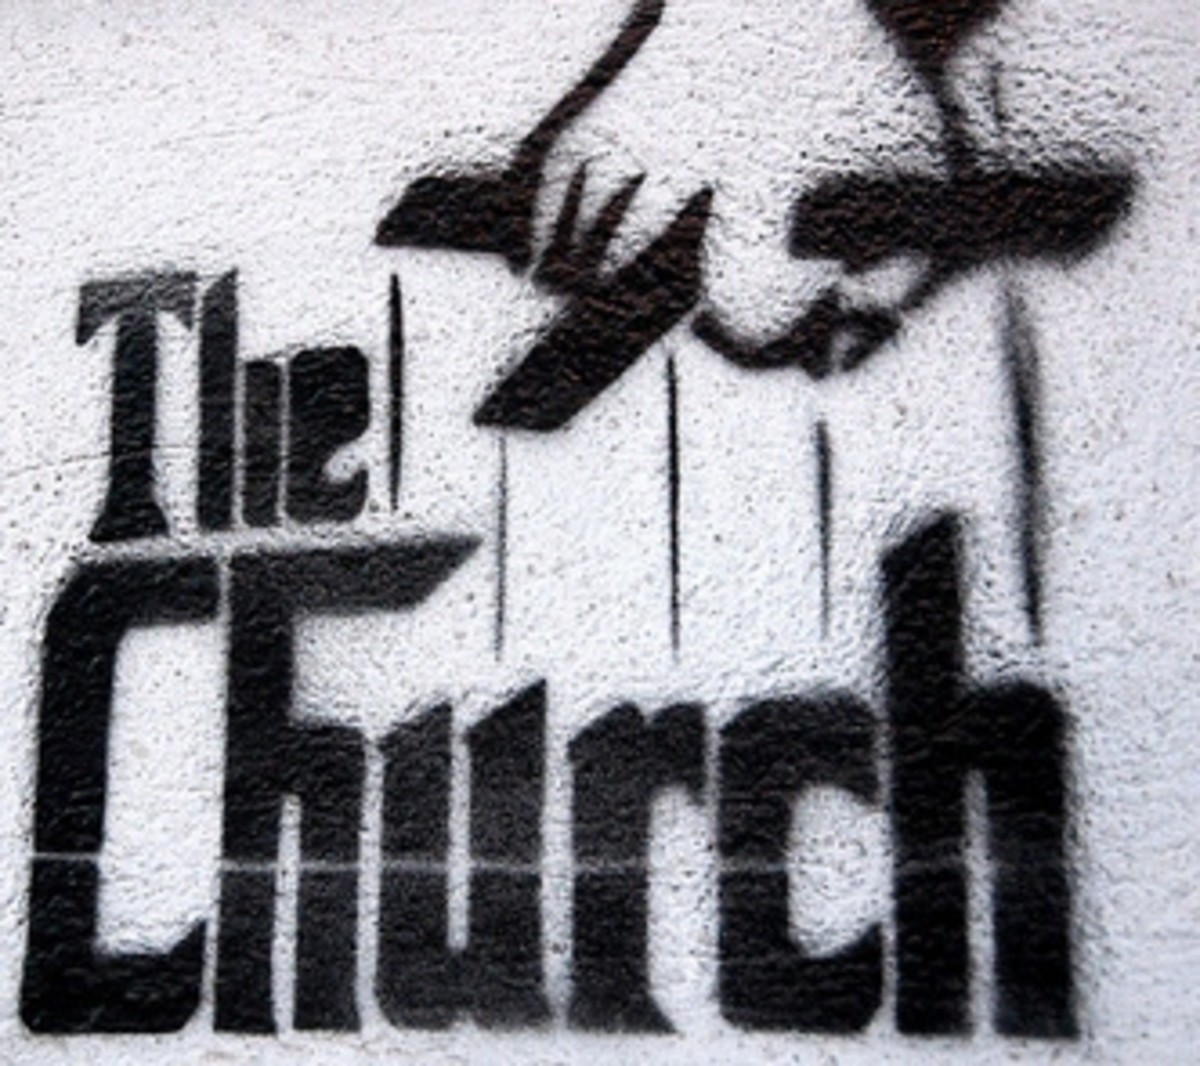 Going to Church will lead to Bondage